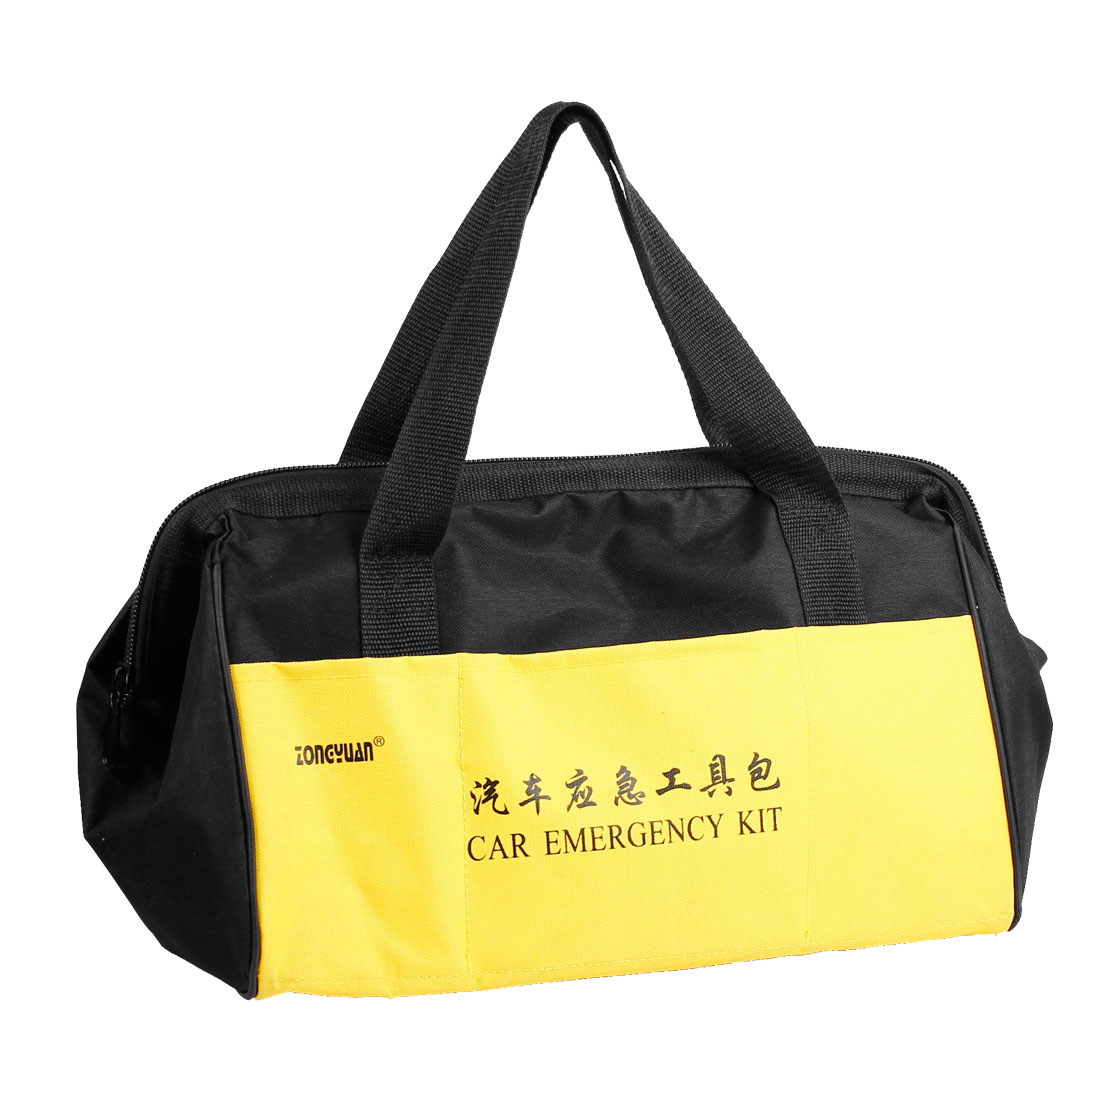 40cm Long Black Yellow Nylon Foldable Emergency Kit Handbag for Car Auto